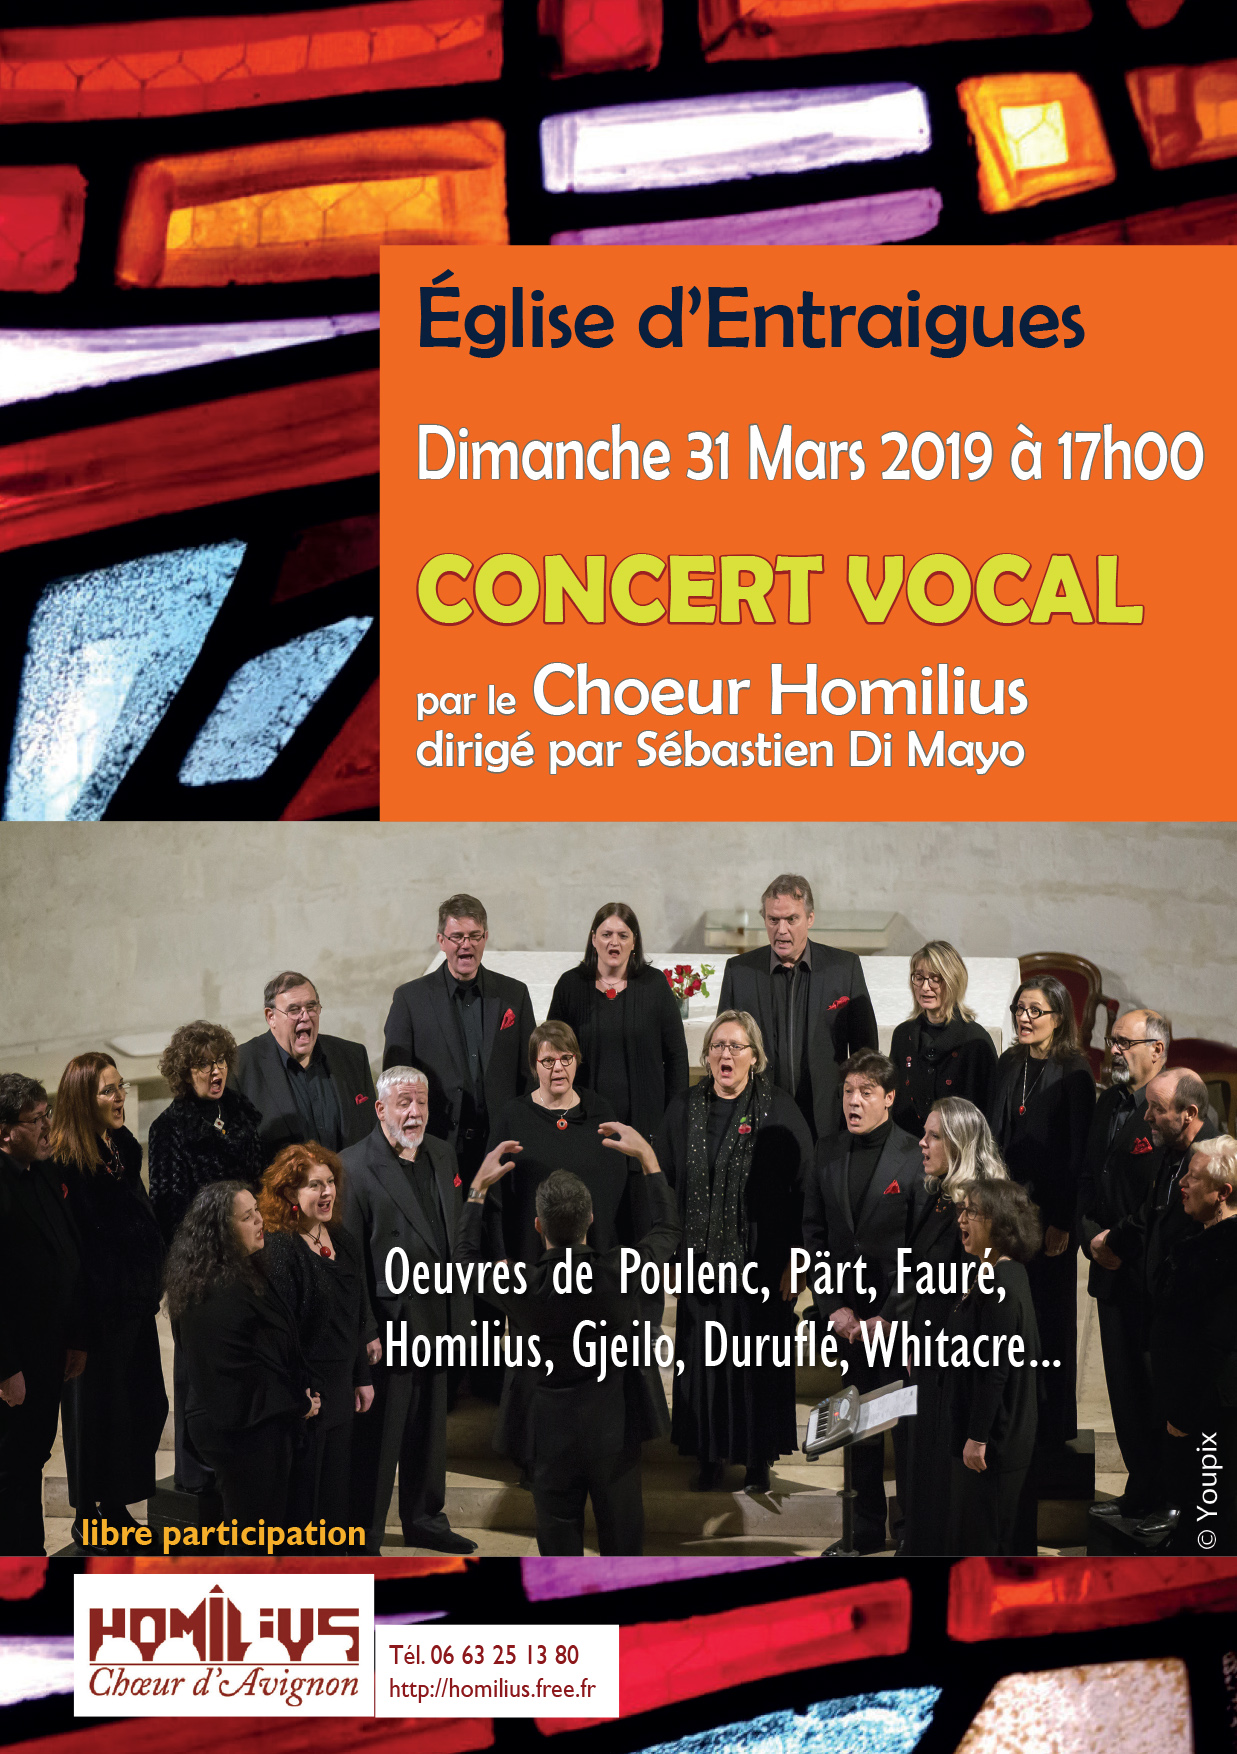 20190331 entraigues